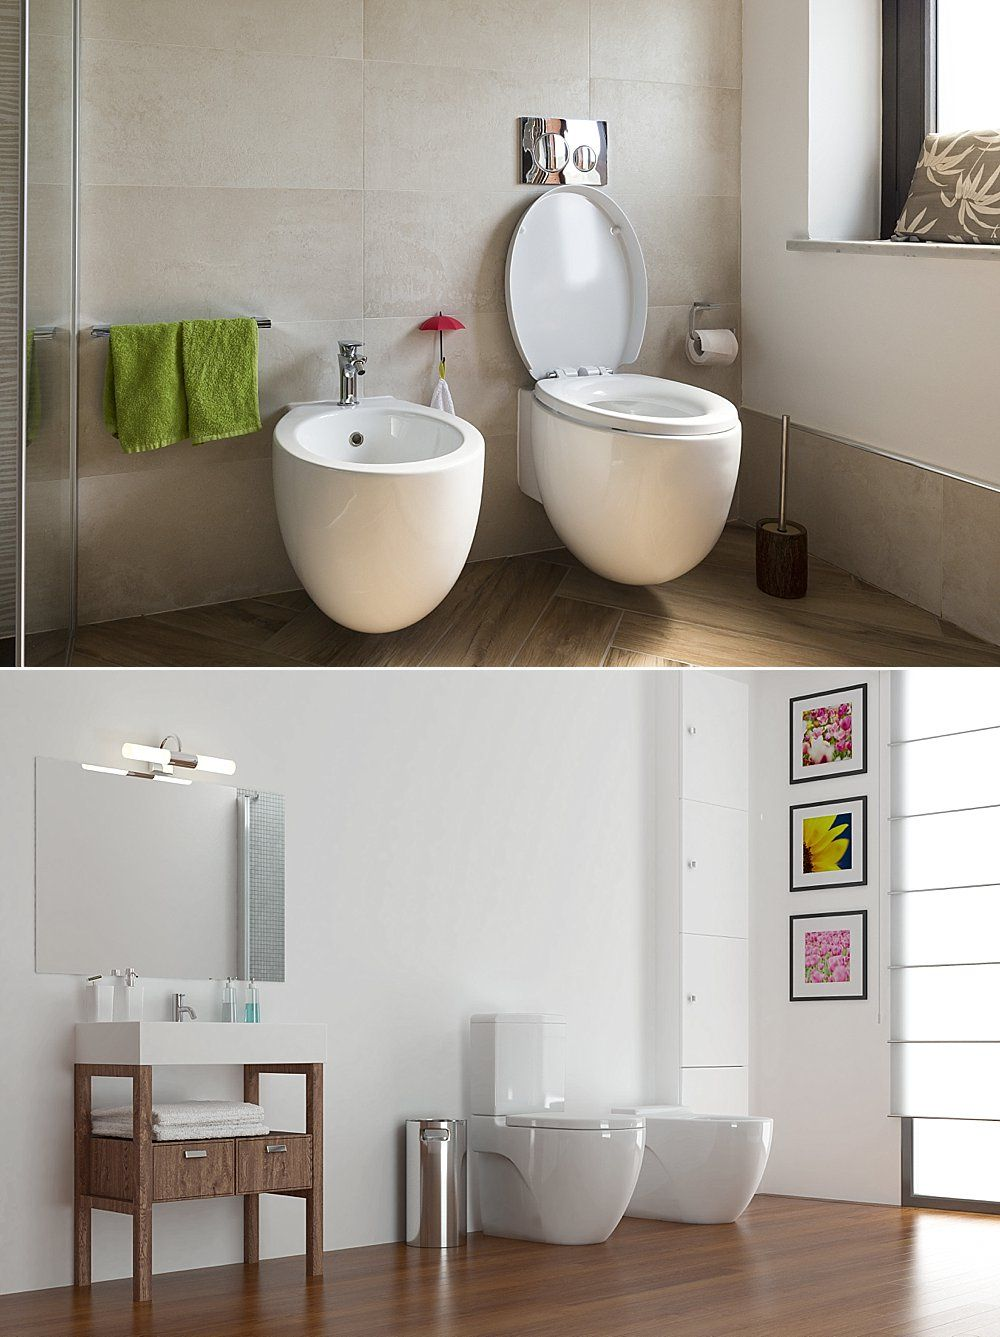 Are All In One Toilets The Future With Images Toilet Interior